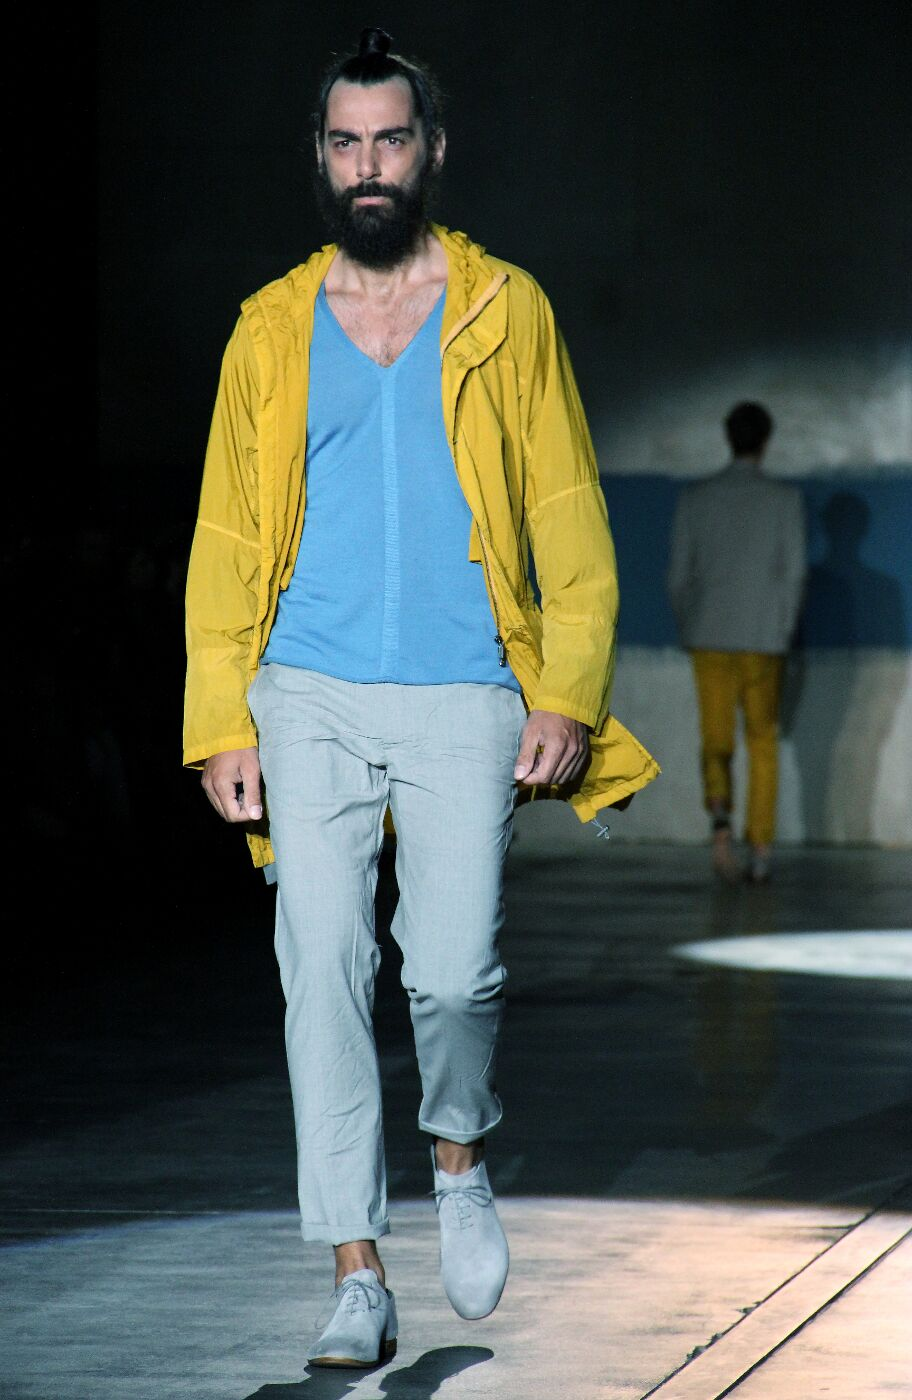 iceberg-spring-summer-2012-men-collection-milano-fashion-week-2012-iceberg-fashion-show-catwalk